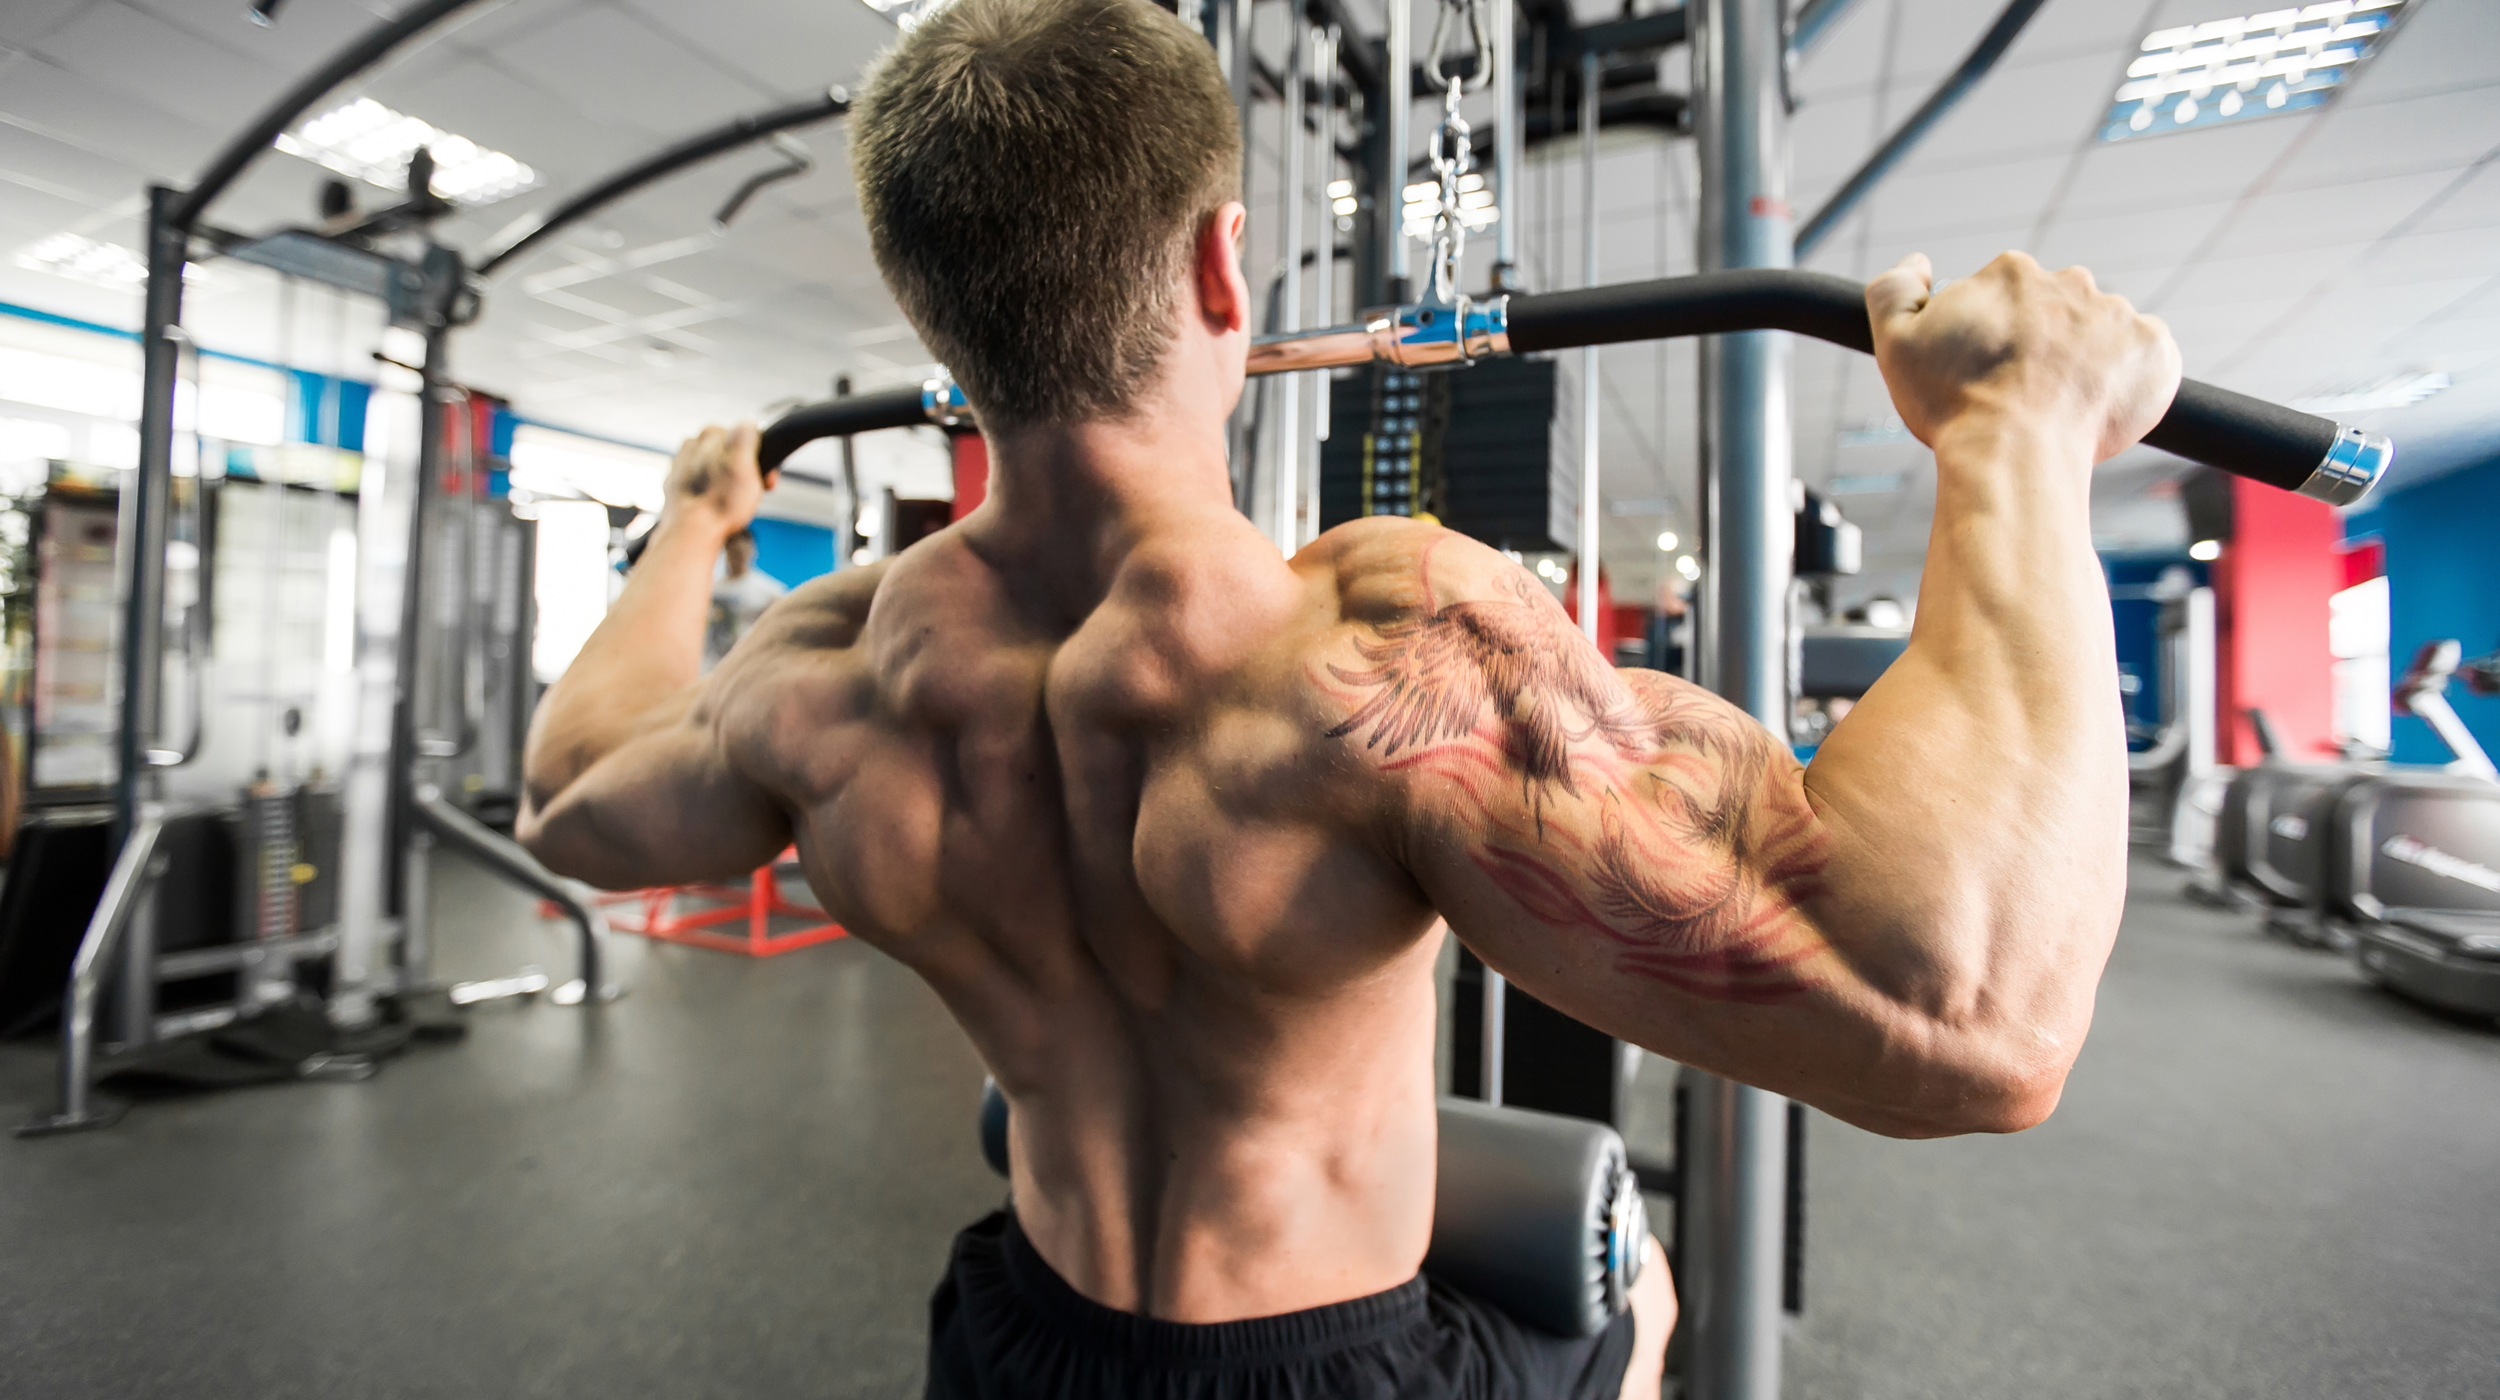 What are the Best Back Workouts for Putting on Size?